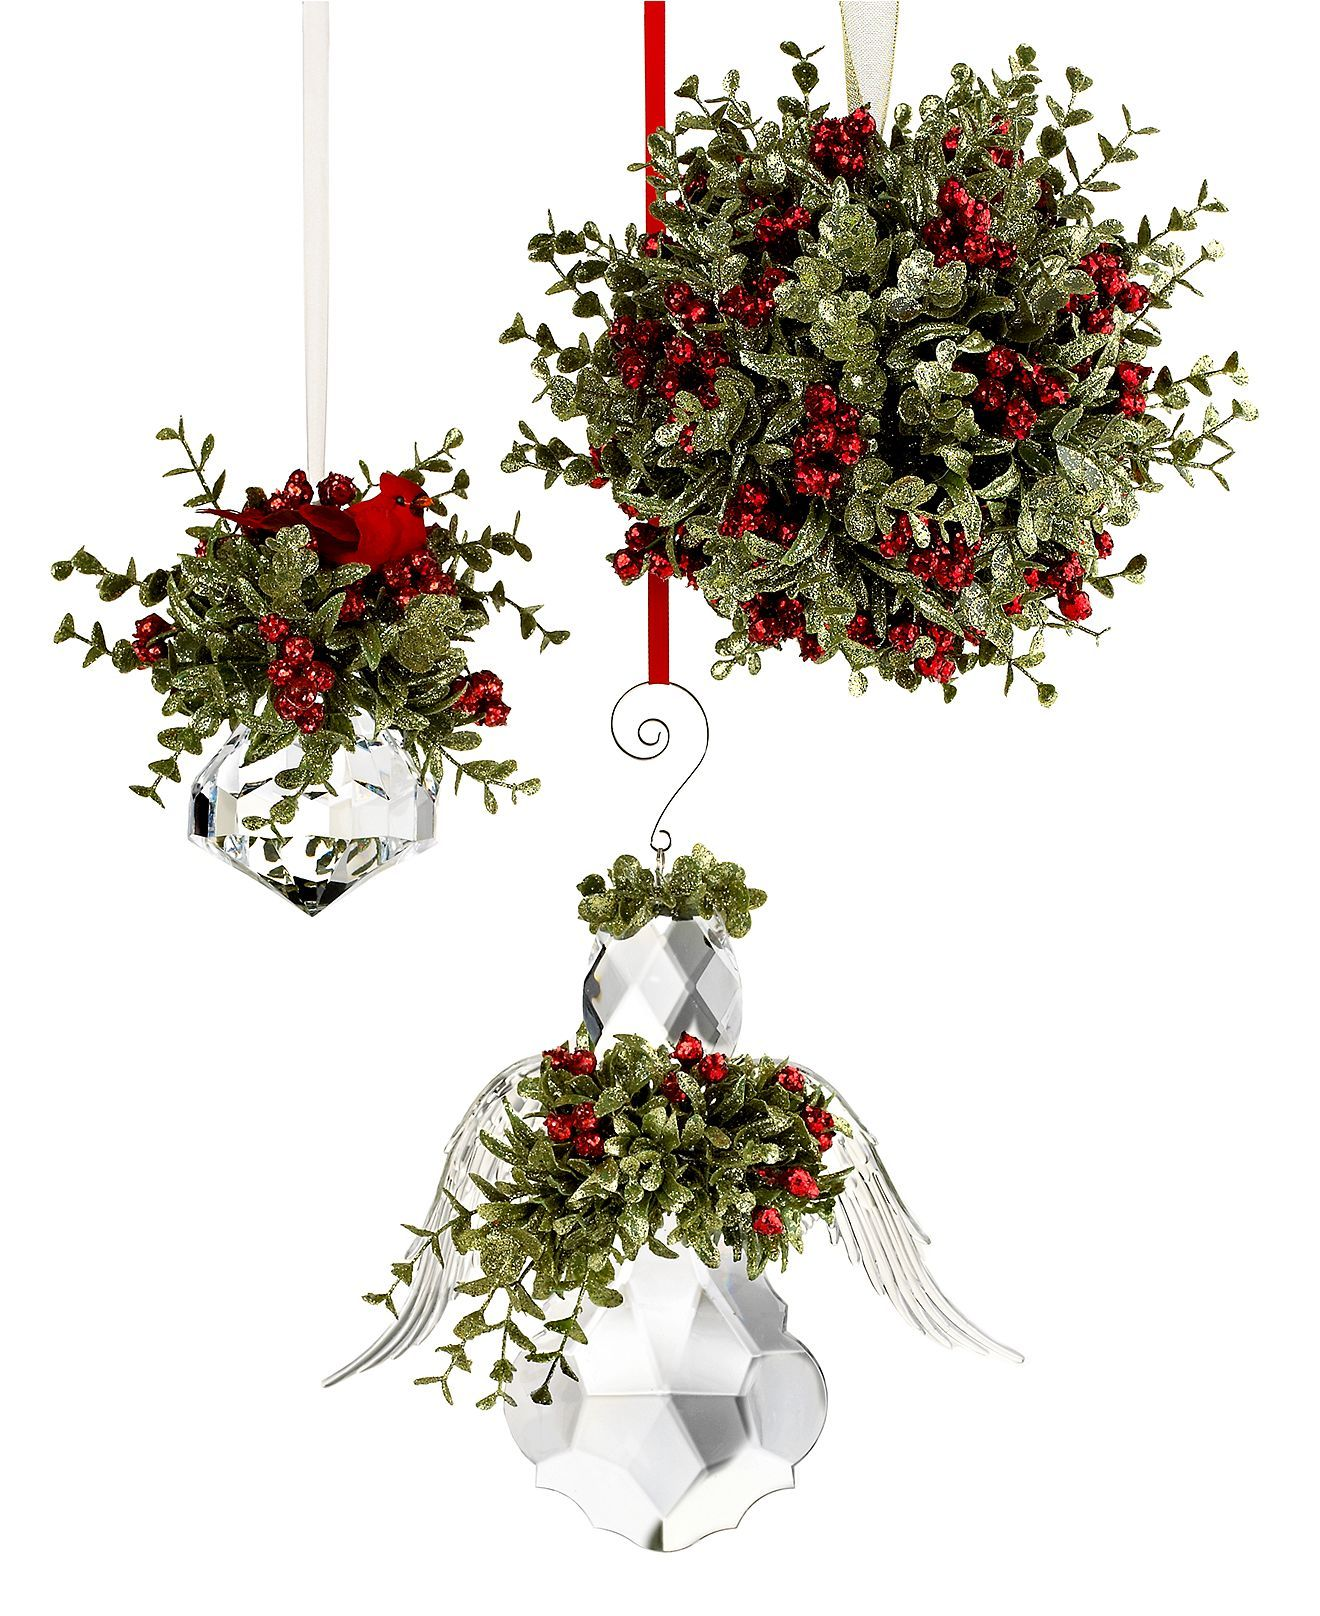 Kissing Ball Decorations | Decorative Design